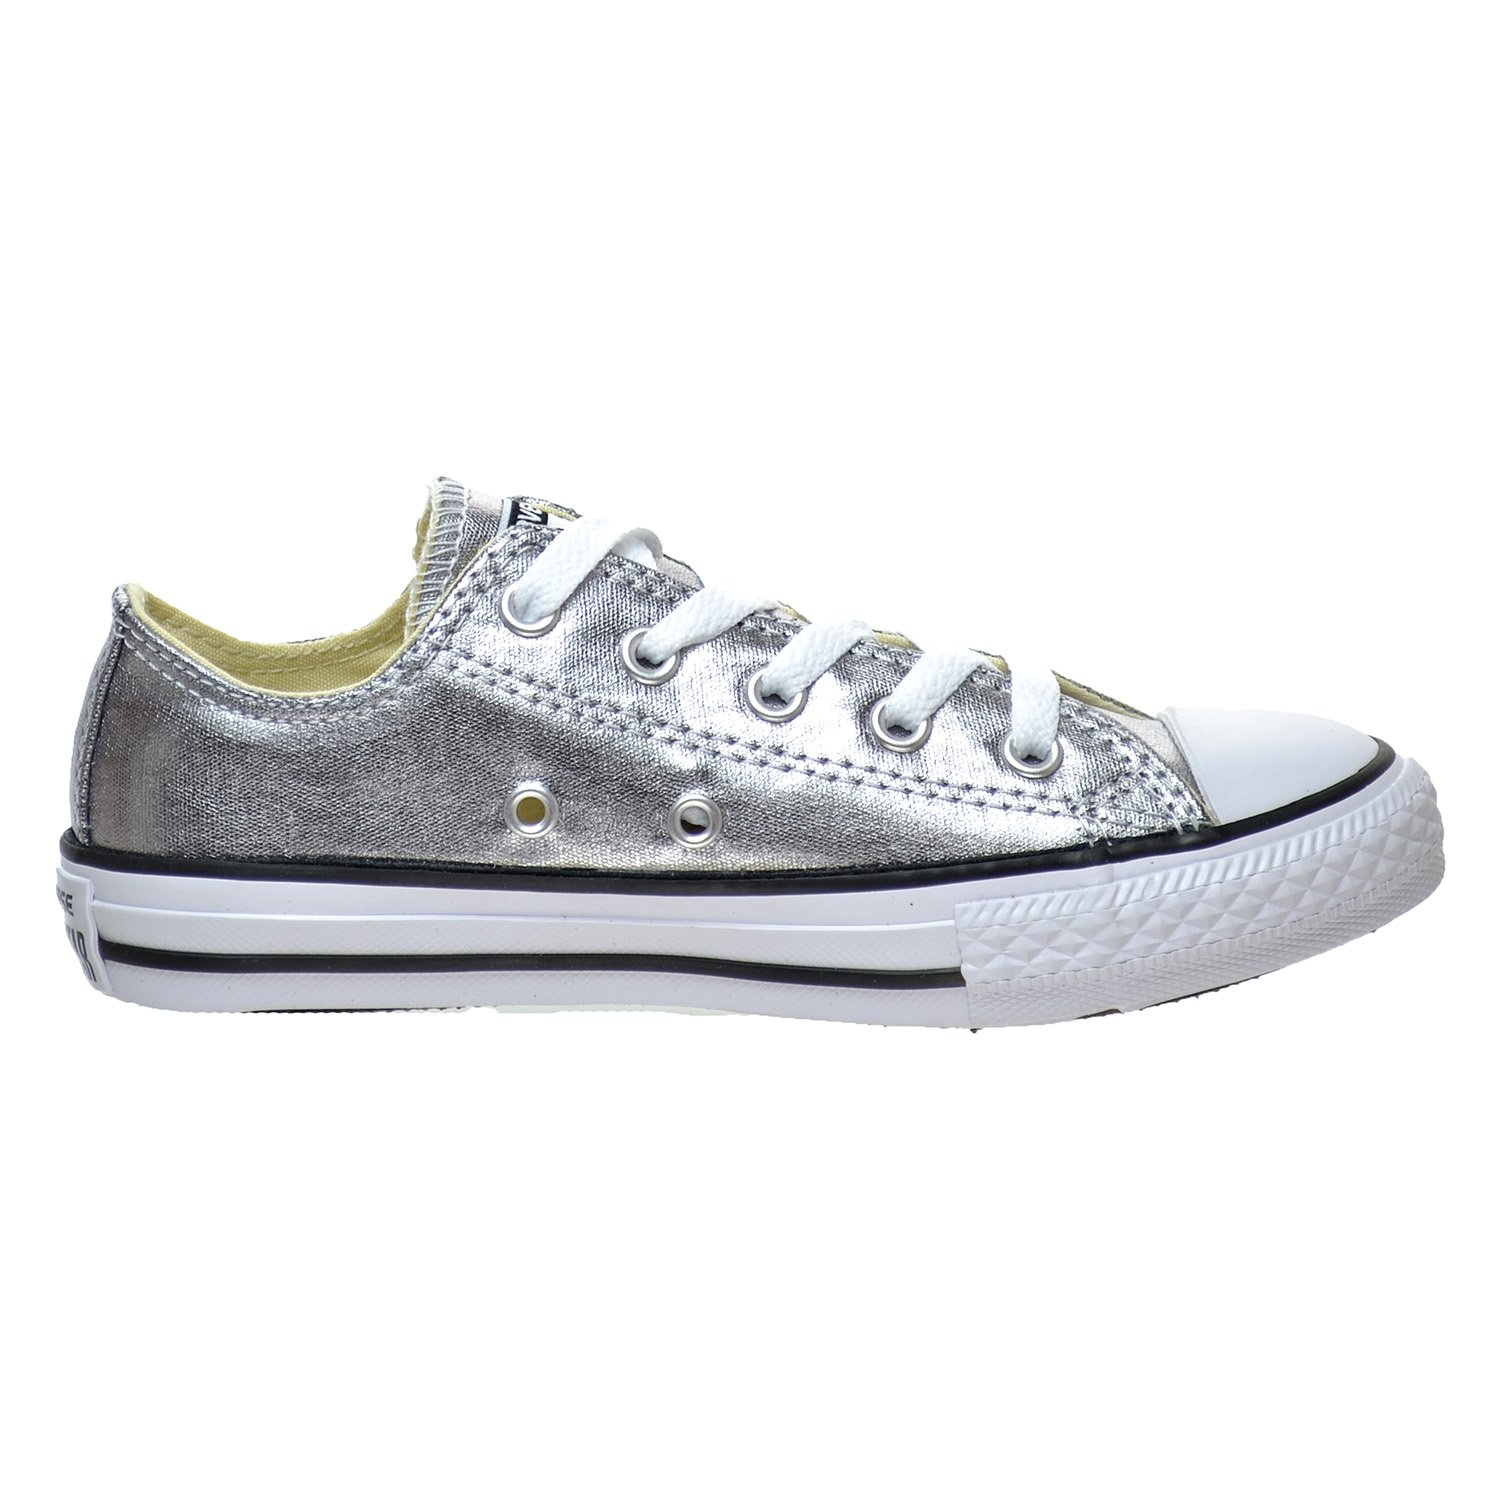 Converse Chuck Taylor All Star Season OX, Unisex Sneaker  12.5 Little Kid M|Metallic Gunmetal/White/Black